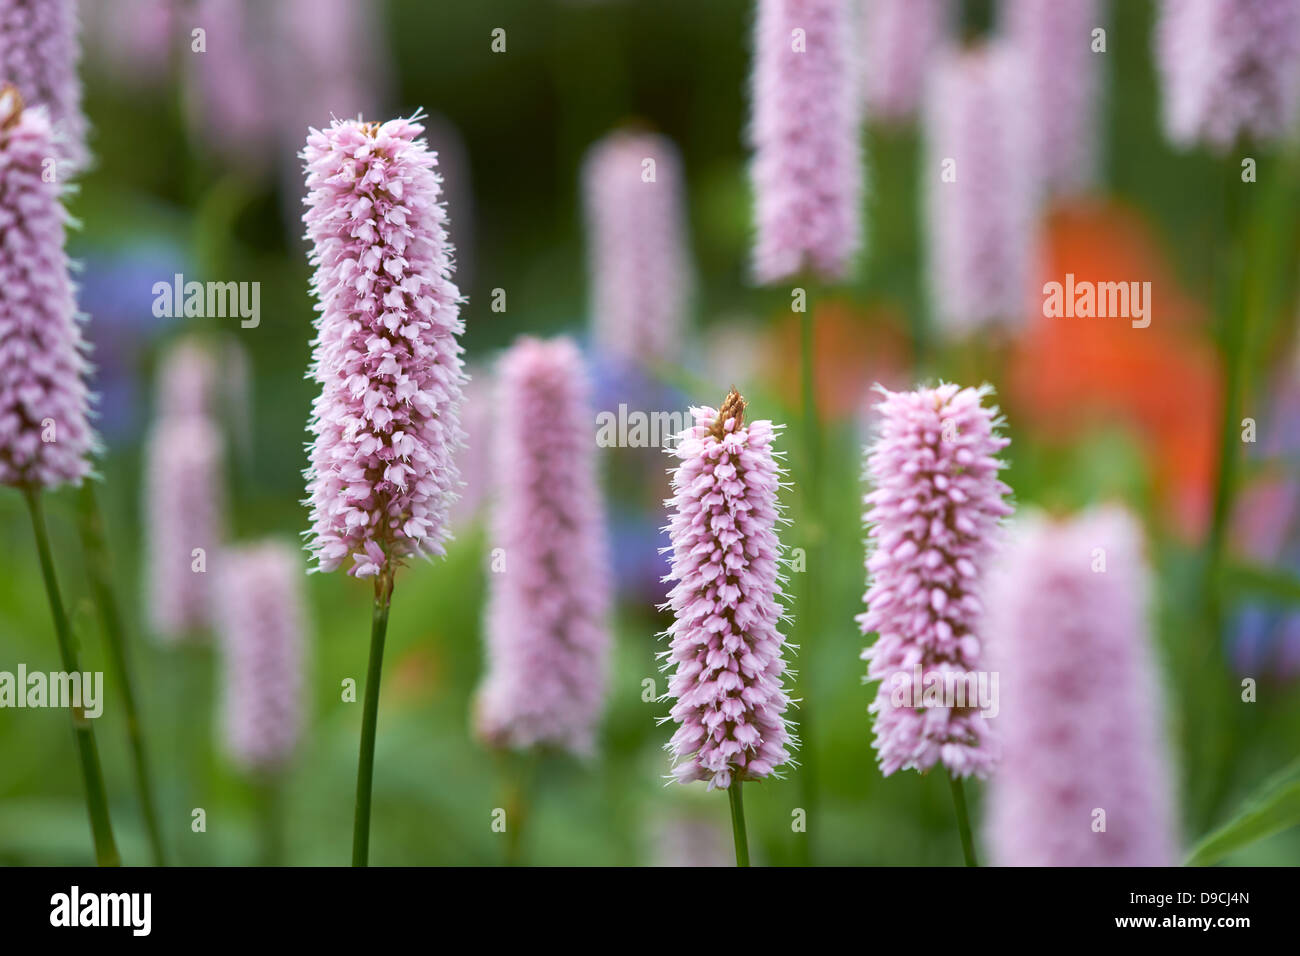 Pink Flowers Blurred Background - Stock Image